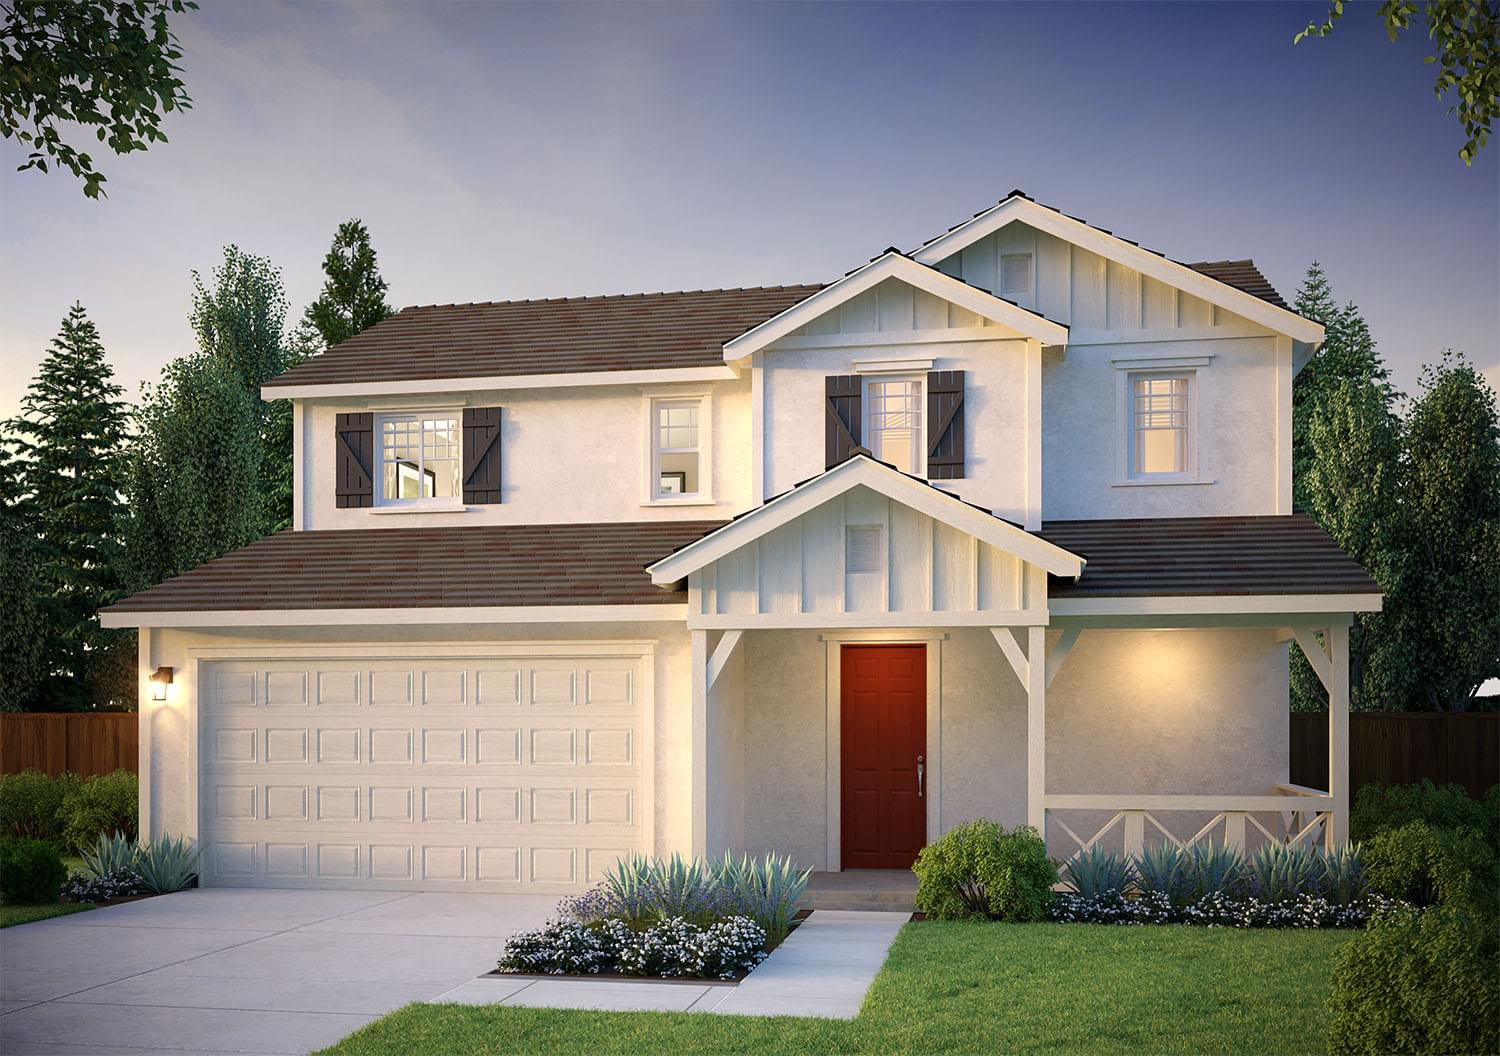 375 Thistle Street in Hollister, CA by DeNova Homes